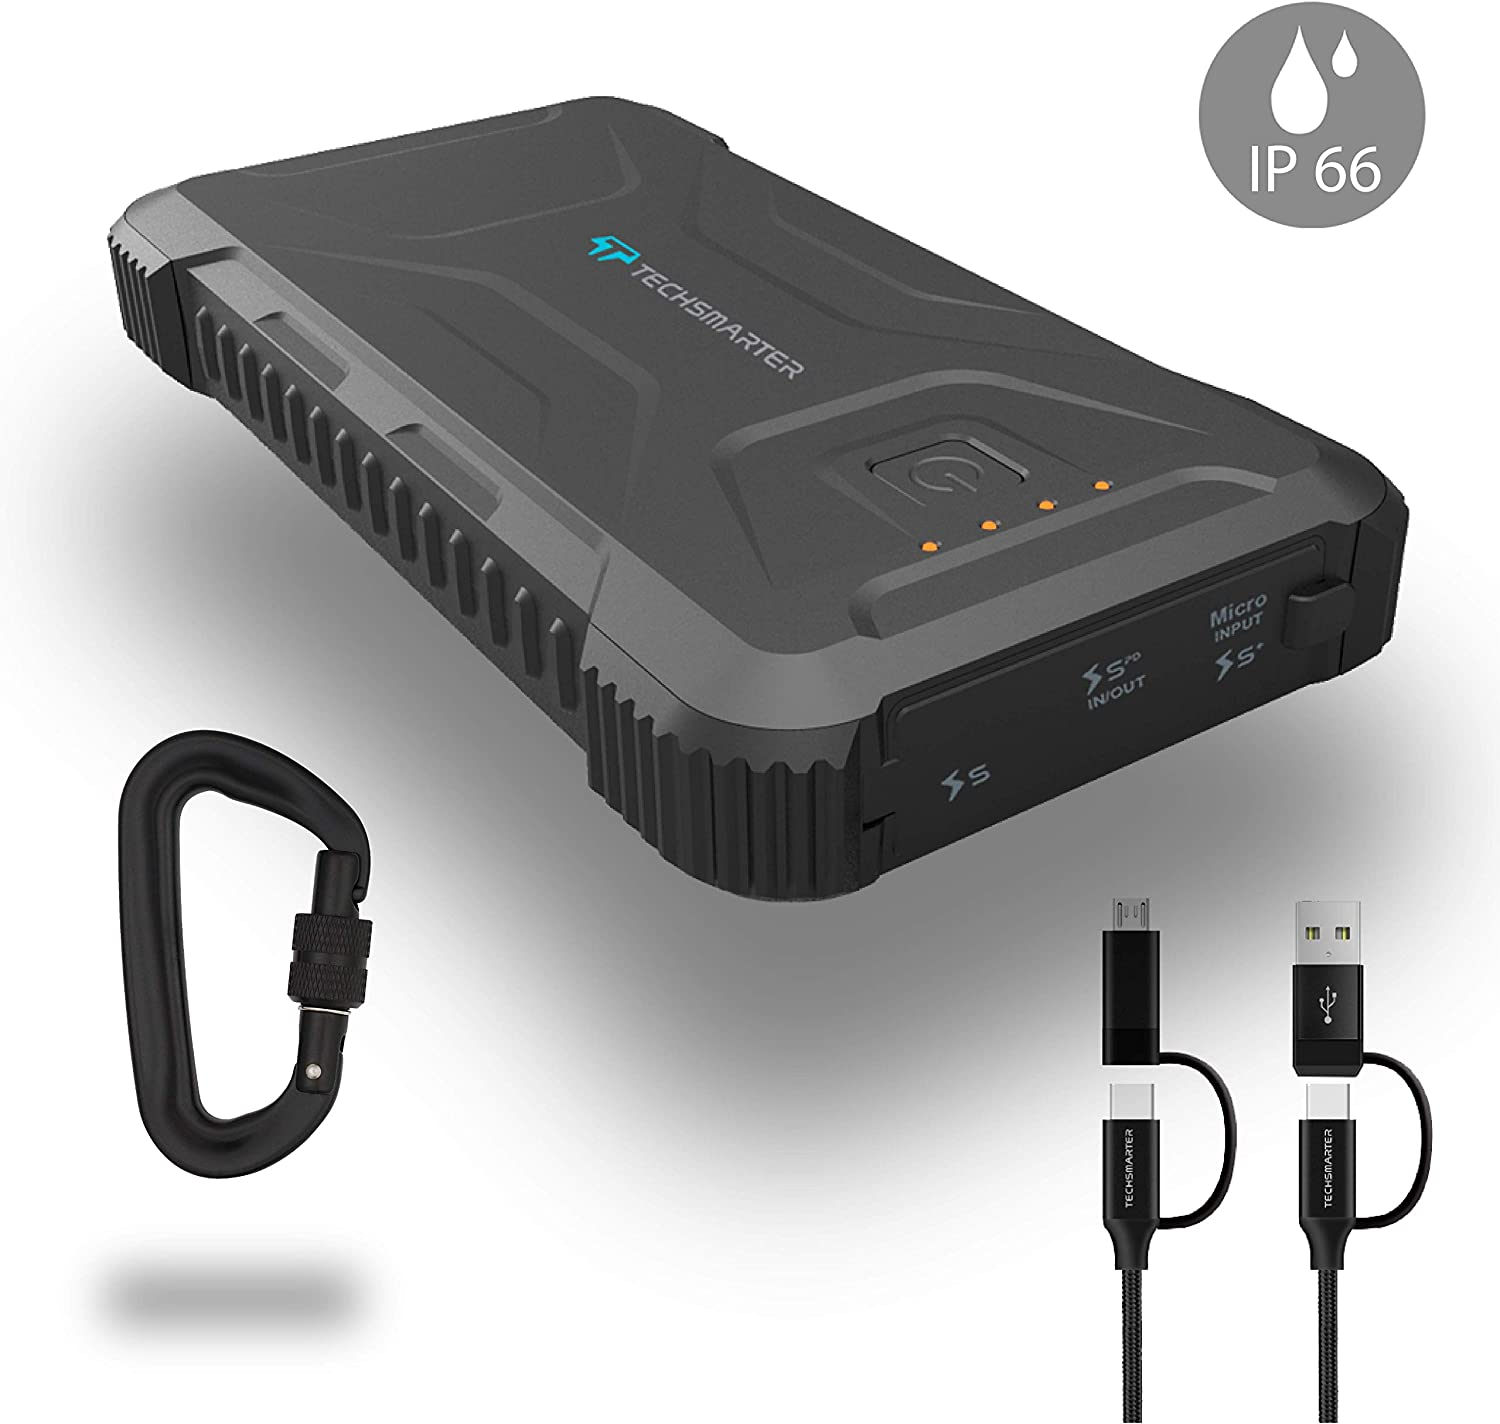 Techsmarter 20,000mah Rugged & Waterproof 18W USB-C PD Port Power Bank. Portable Charger Heavy Duty, Camping, Hiking, Outdoor with Flashlight. Compatible with iPhone, Samsung, iPad, Android